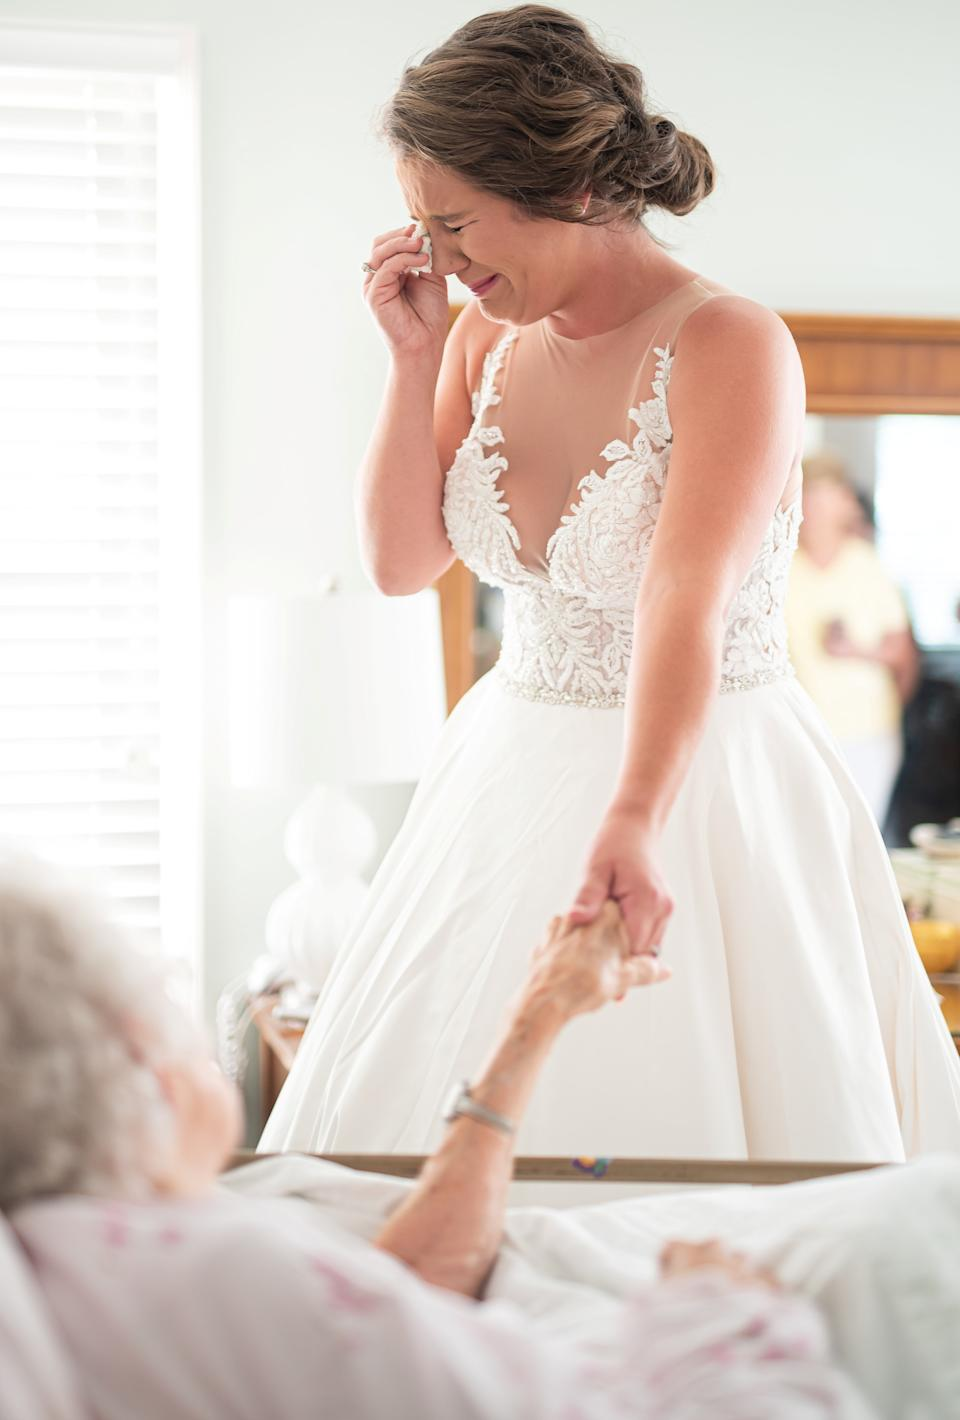 The emotional moment a dying grandmother sees her granddaughter as a bride. (SWNS)